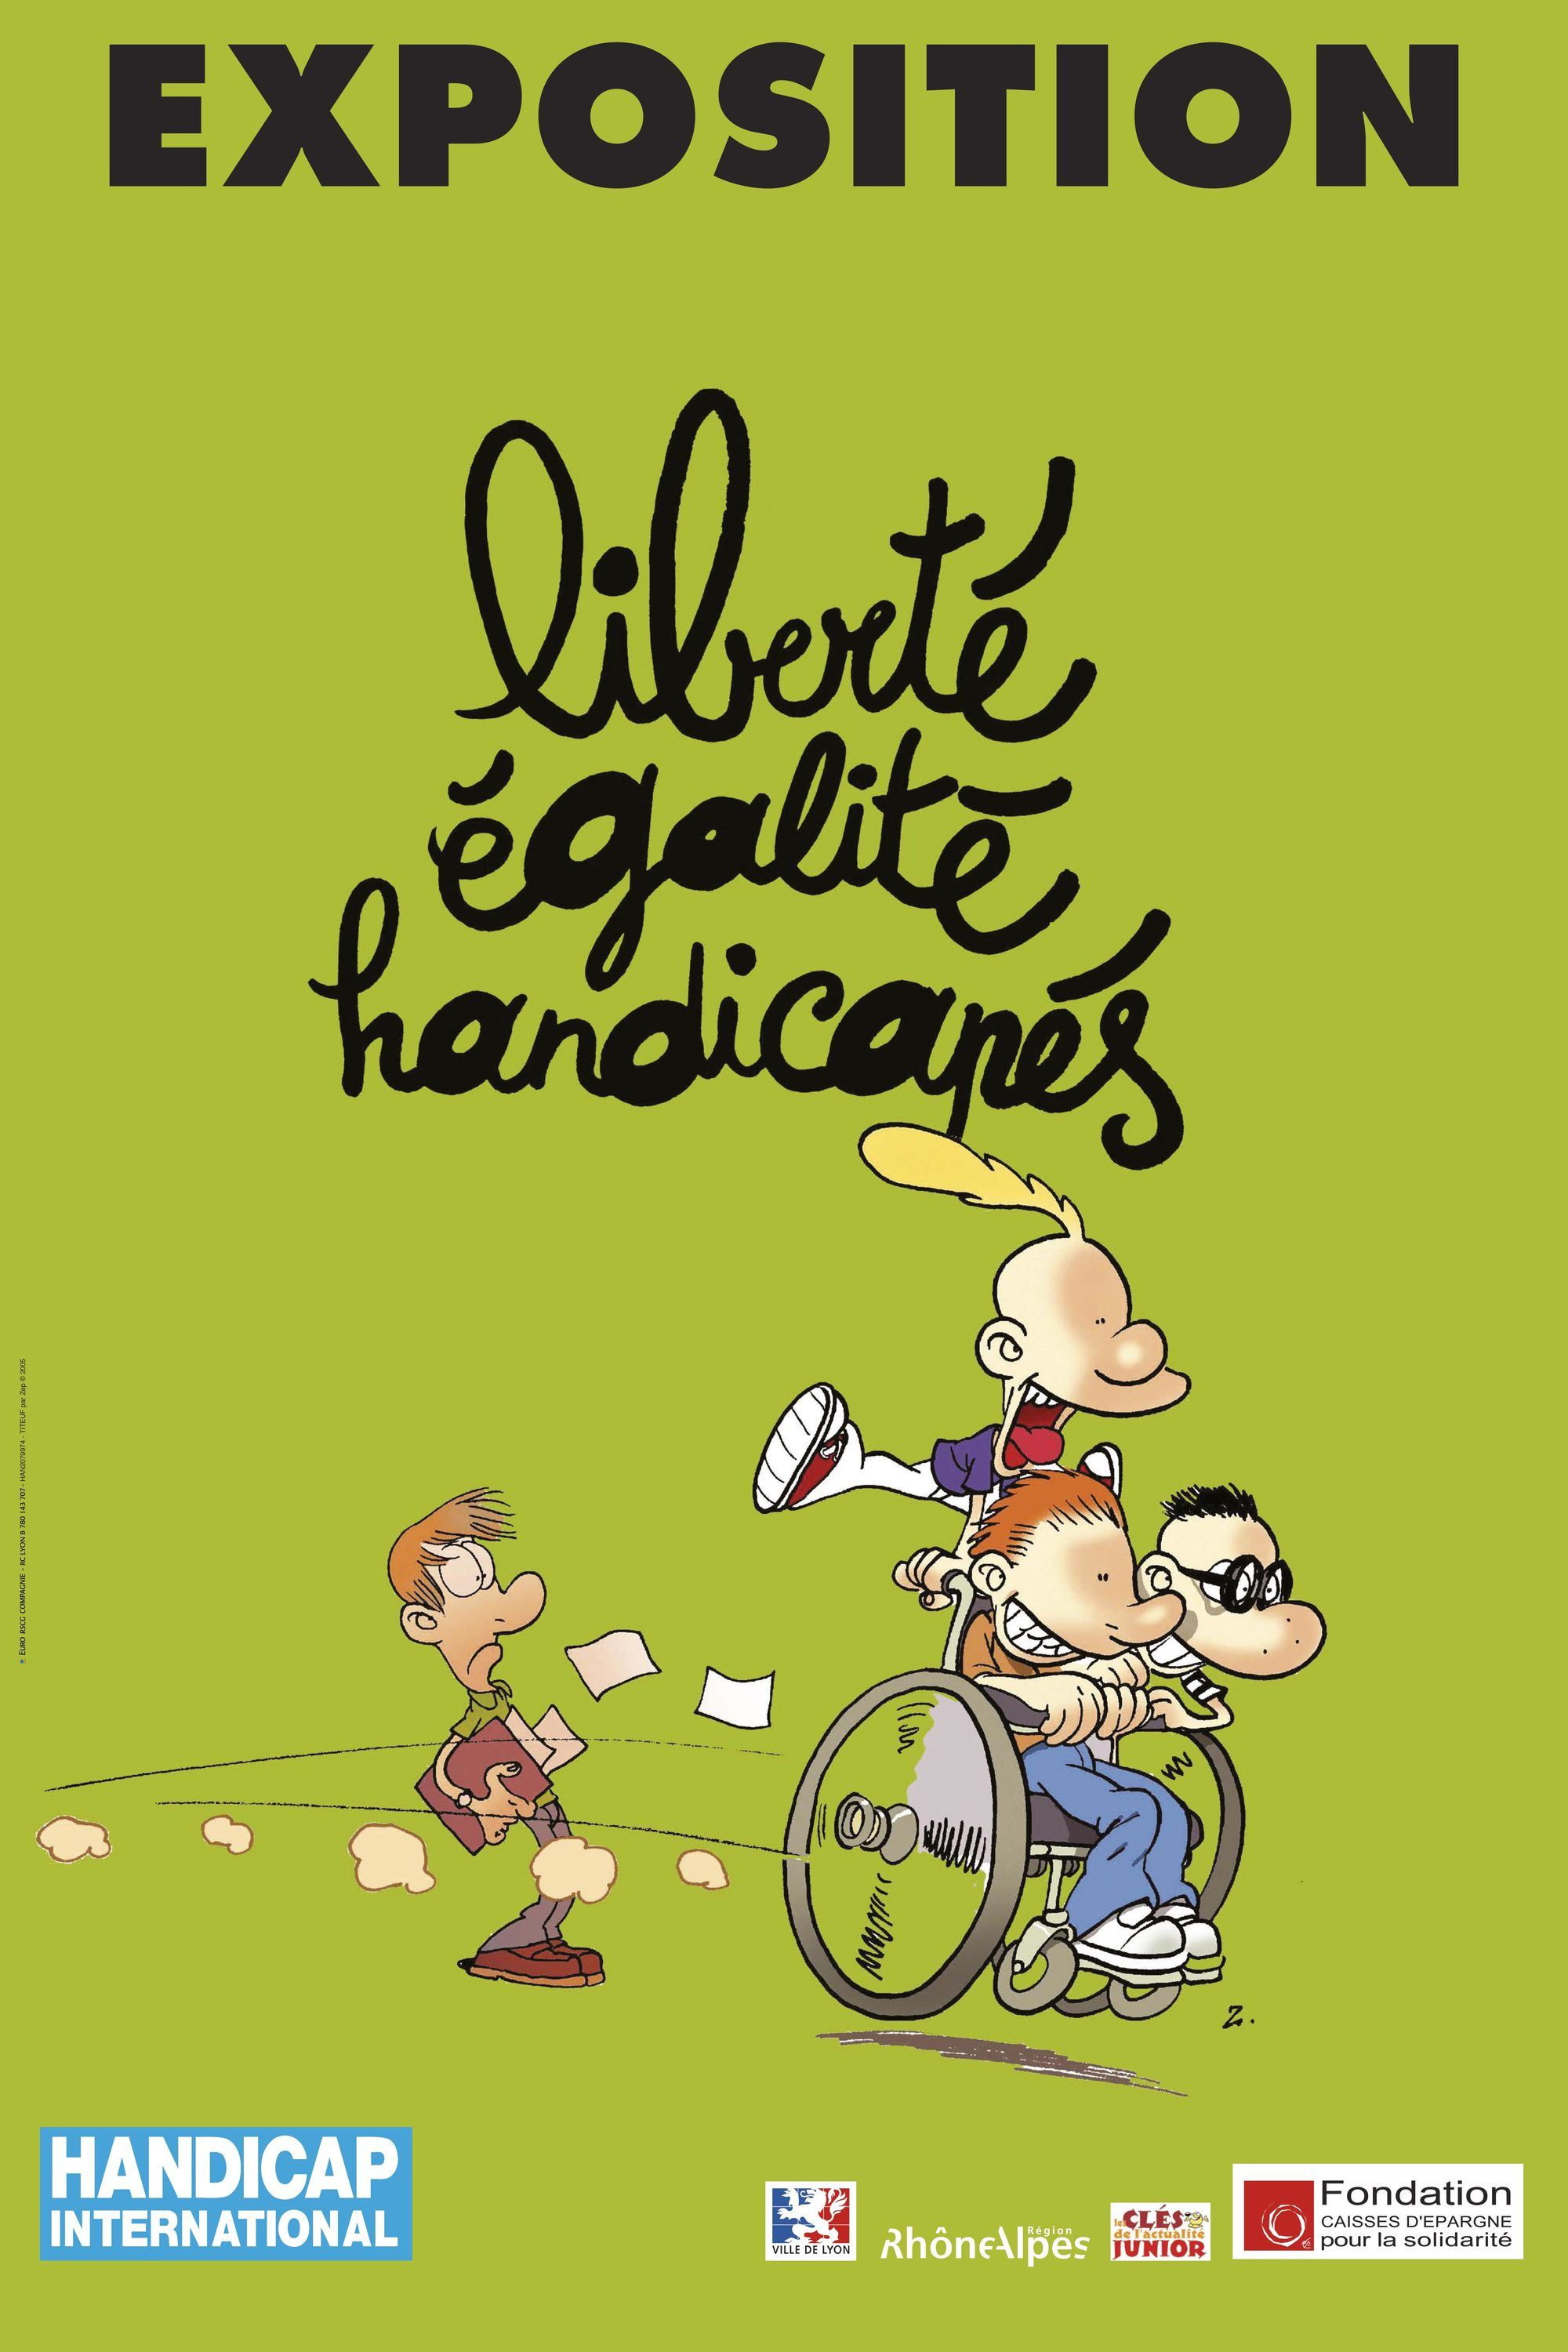 Affiche de Handicap International